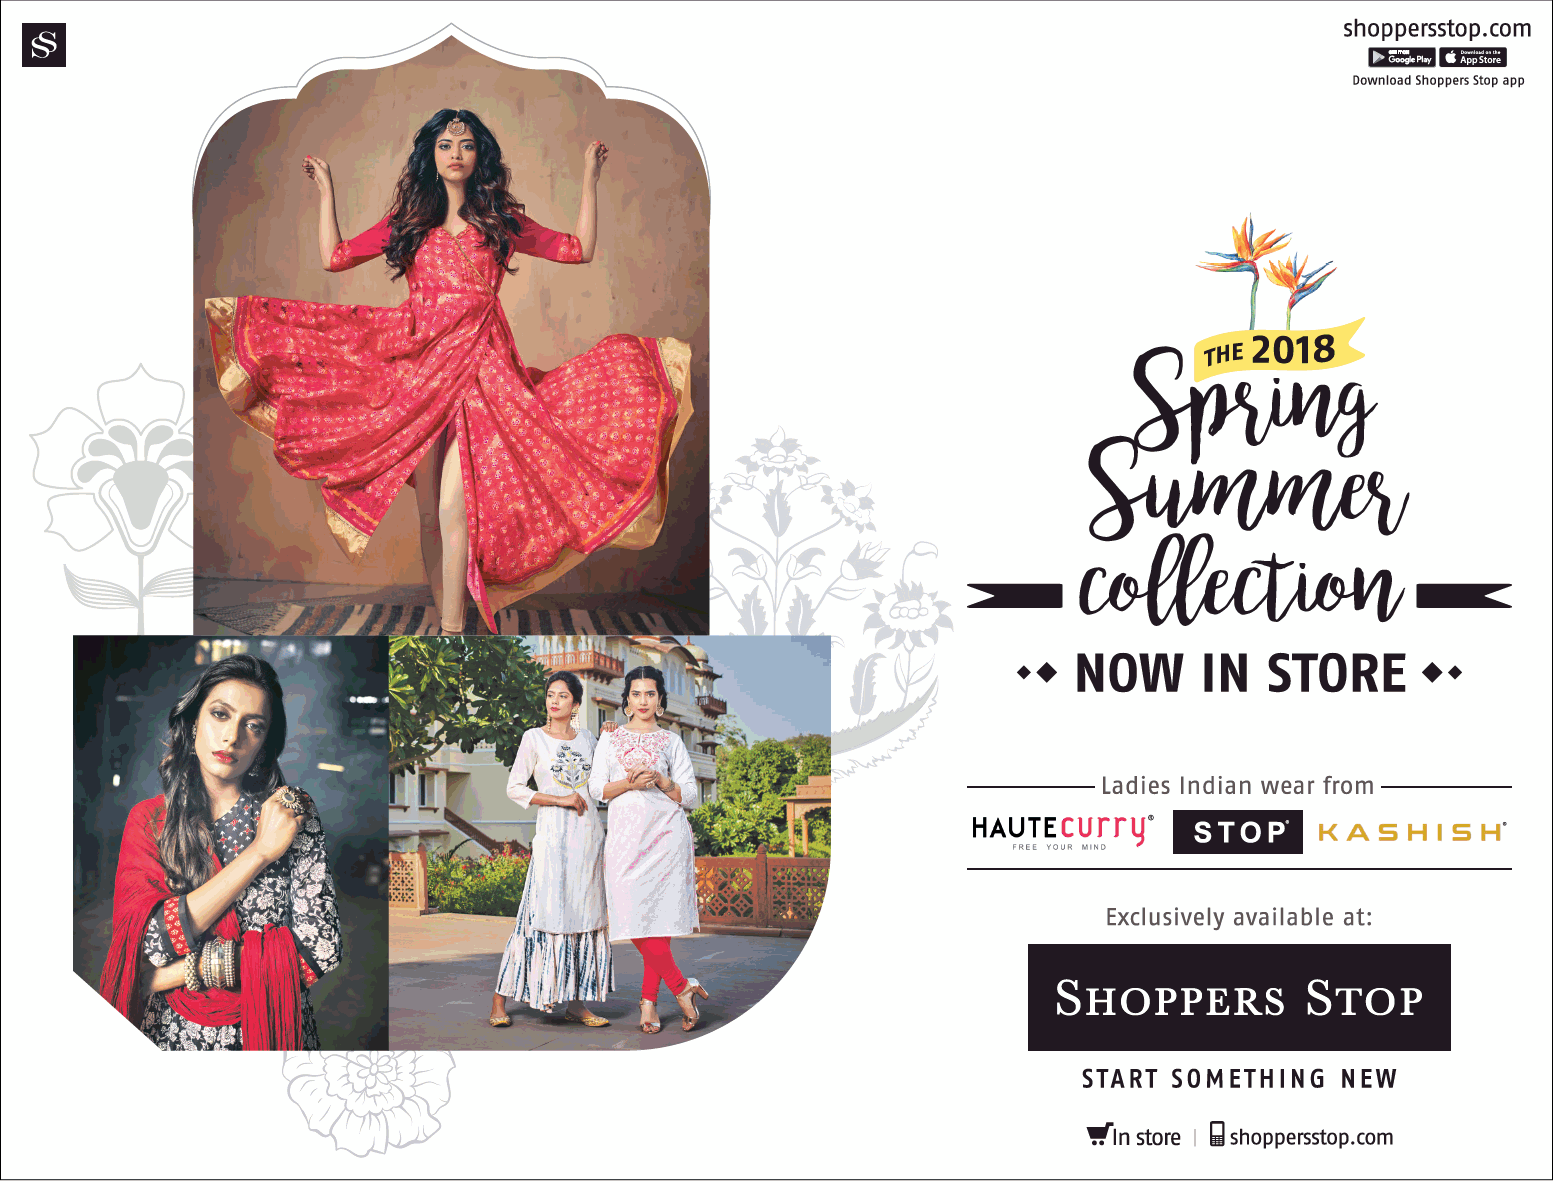 Shoppers Stop The 2018 Spring Summer Collection Now In Store Ad